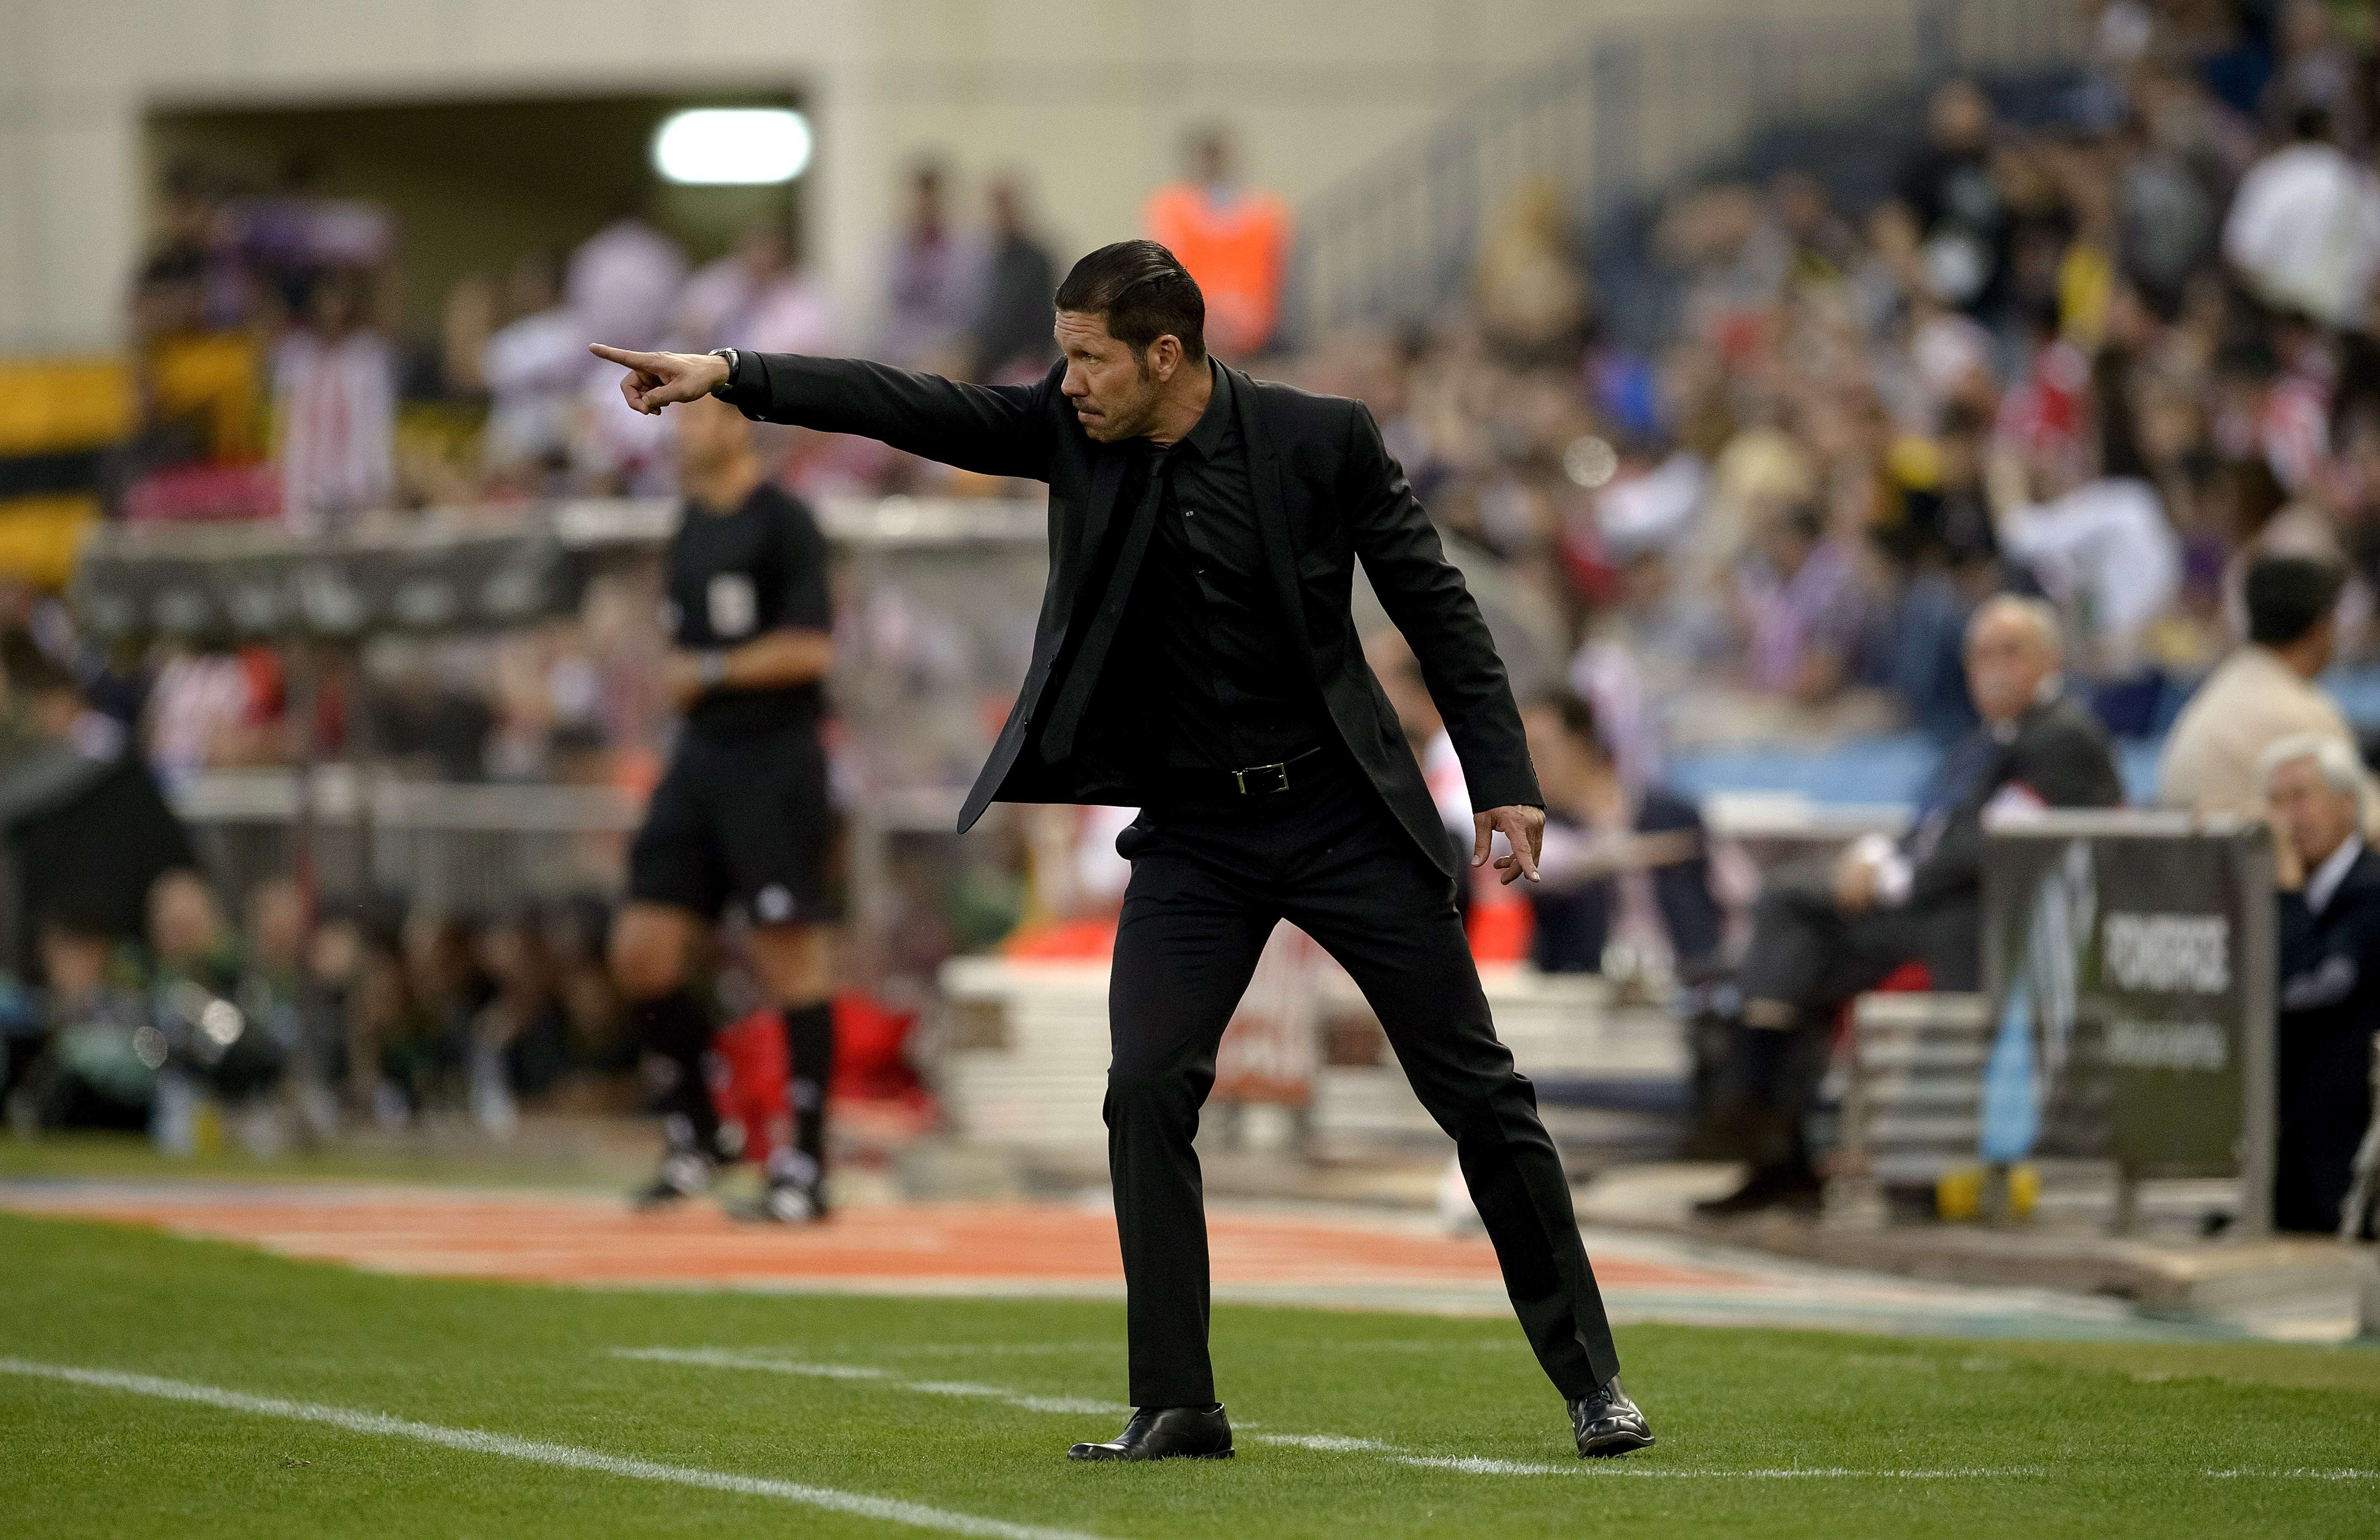 Atletico Madrid's Argentinian coach Diego Simeone gestures during the Spanish league football match Club Atletico de Madrid vs Elche CF at the Vicente Calderon stadium in Madrid on April 18, 2014. AFP PHOTO/ DANI POZODANI POZO/AFP/Getty Images@@DV1707650.jpg